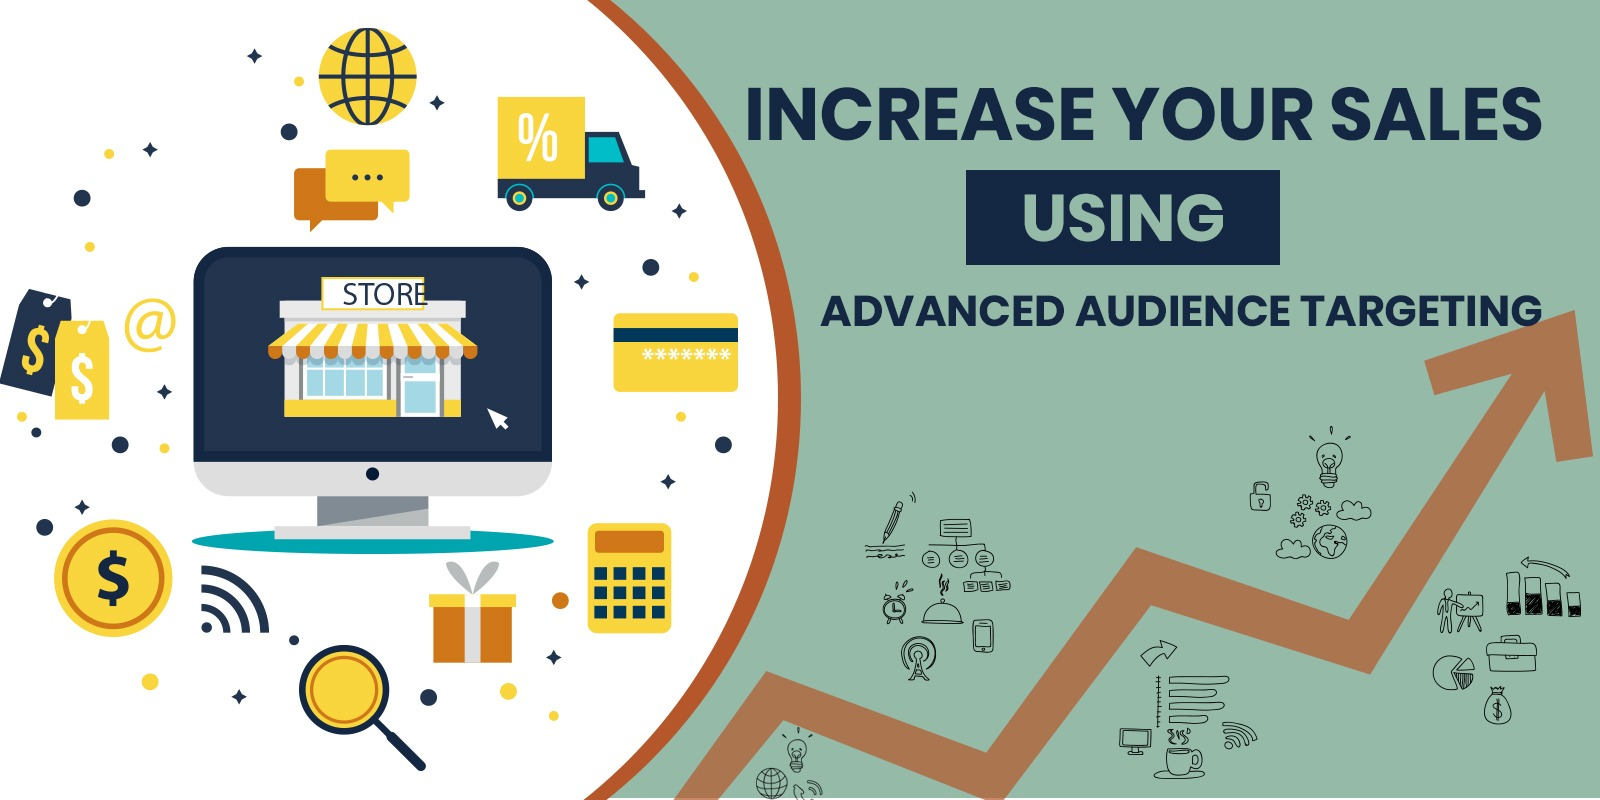 Increase your Sales Using Advanced Audience Targeting with PPC